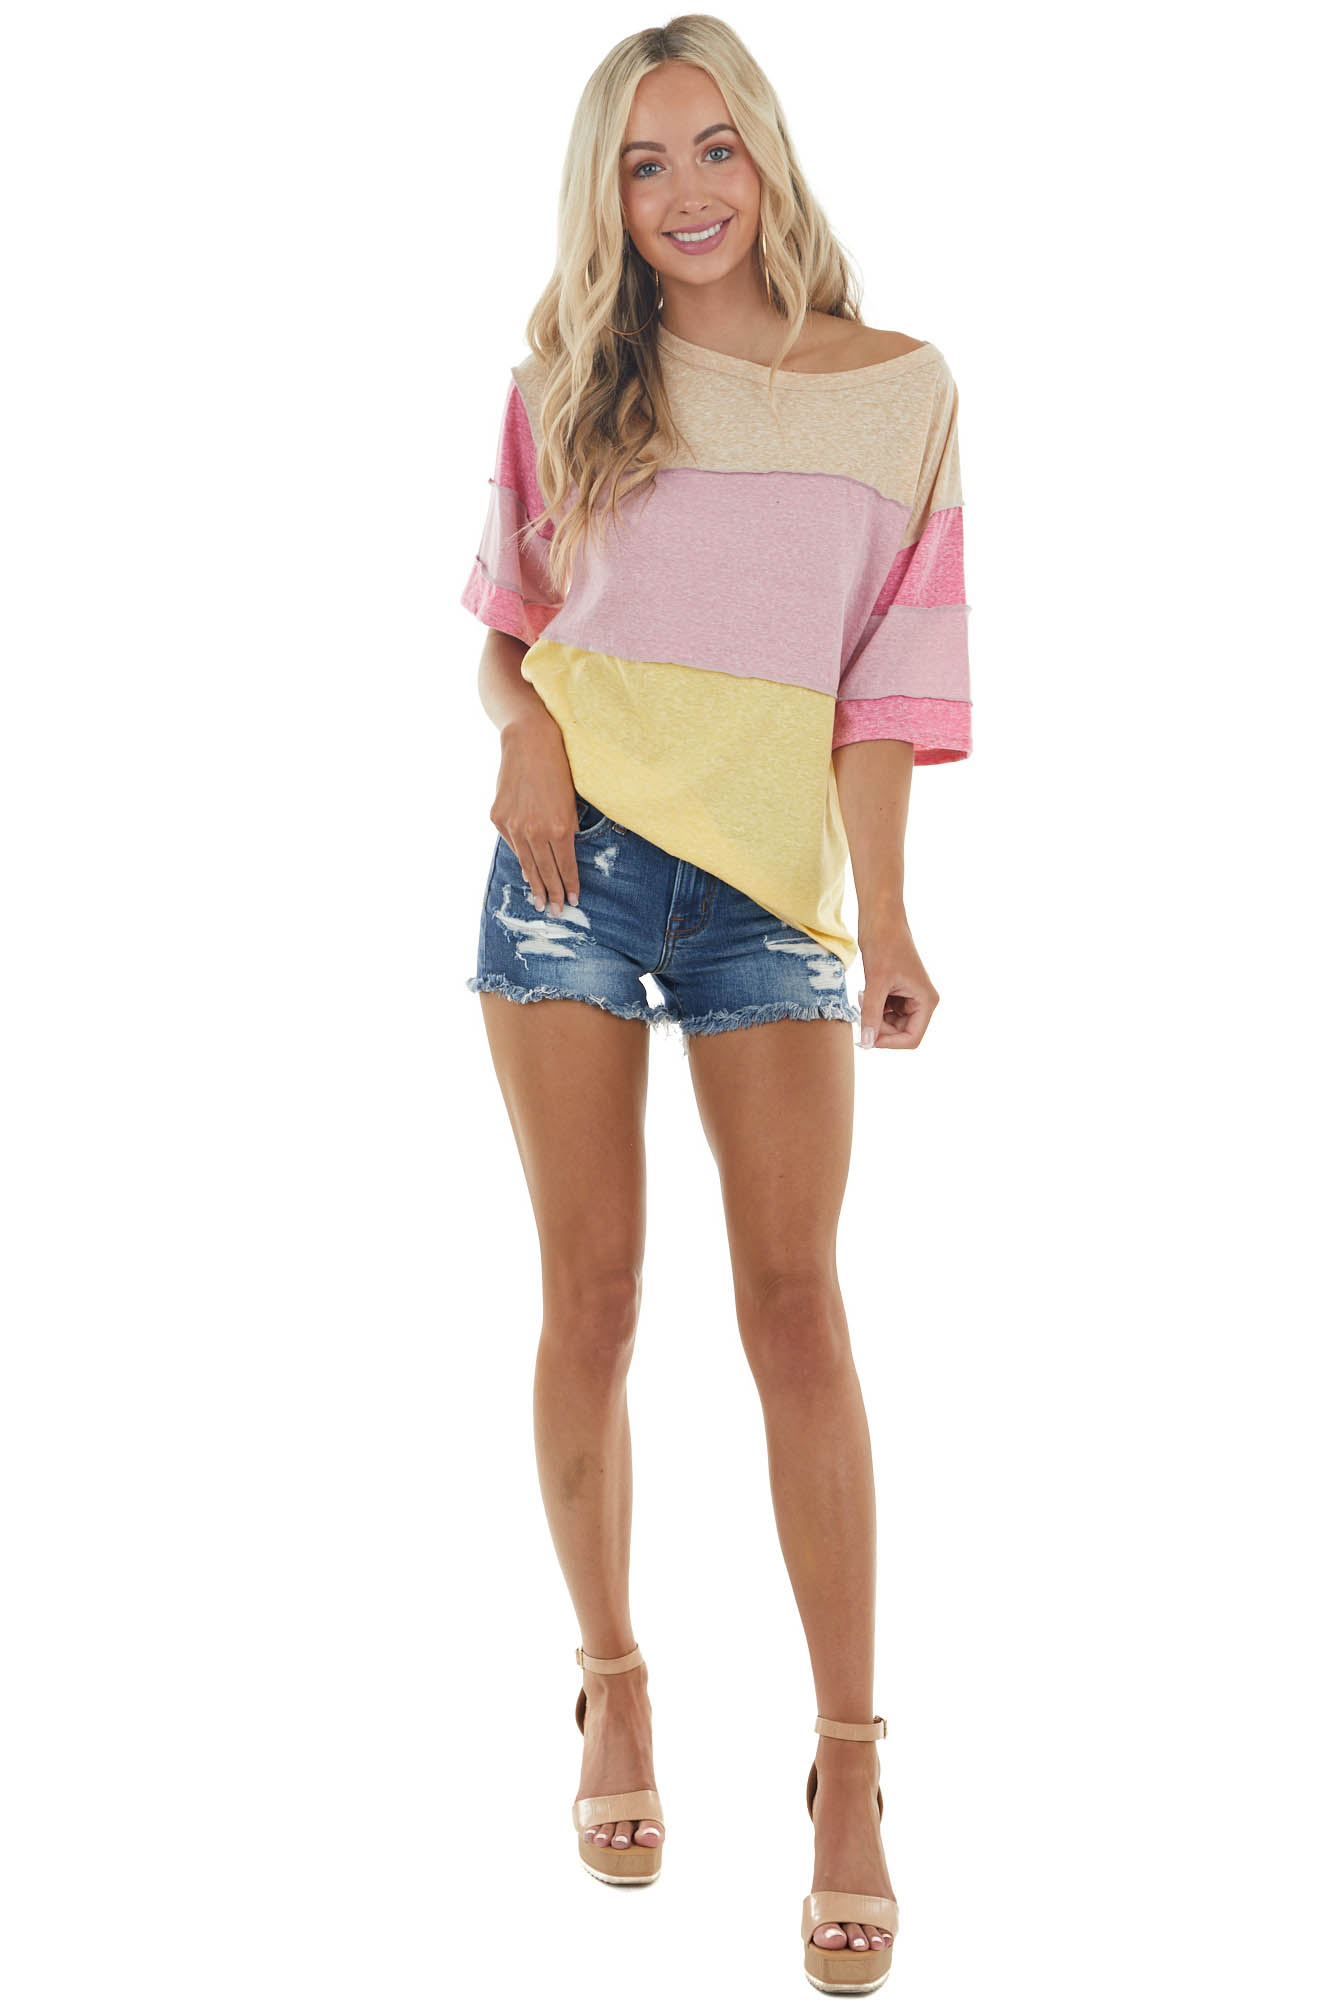 Banana Colorblock Short Sleeve Top with Reverse Stitching